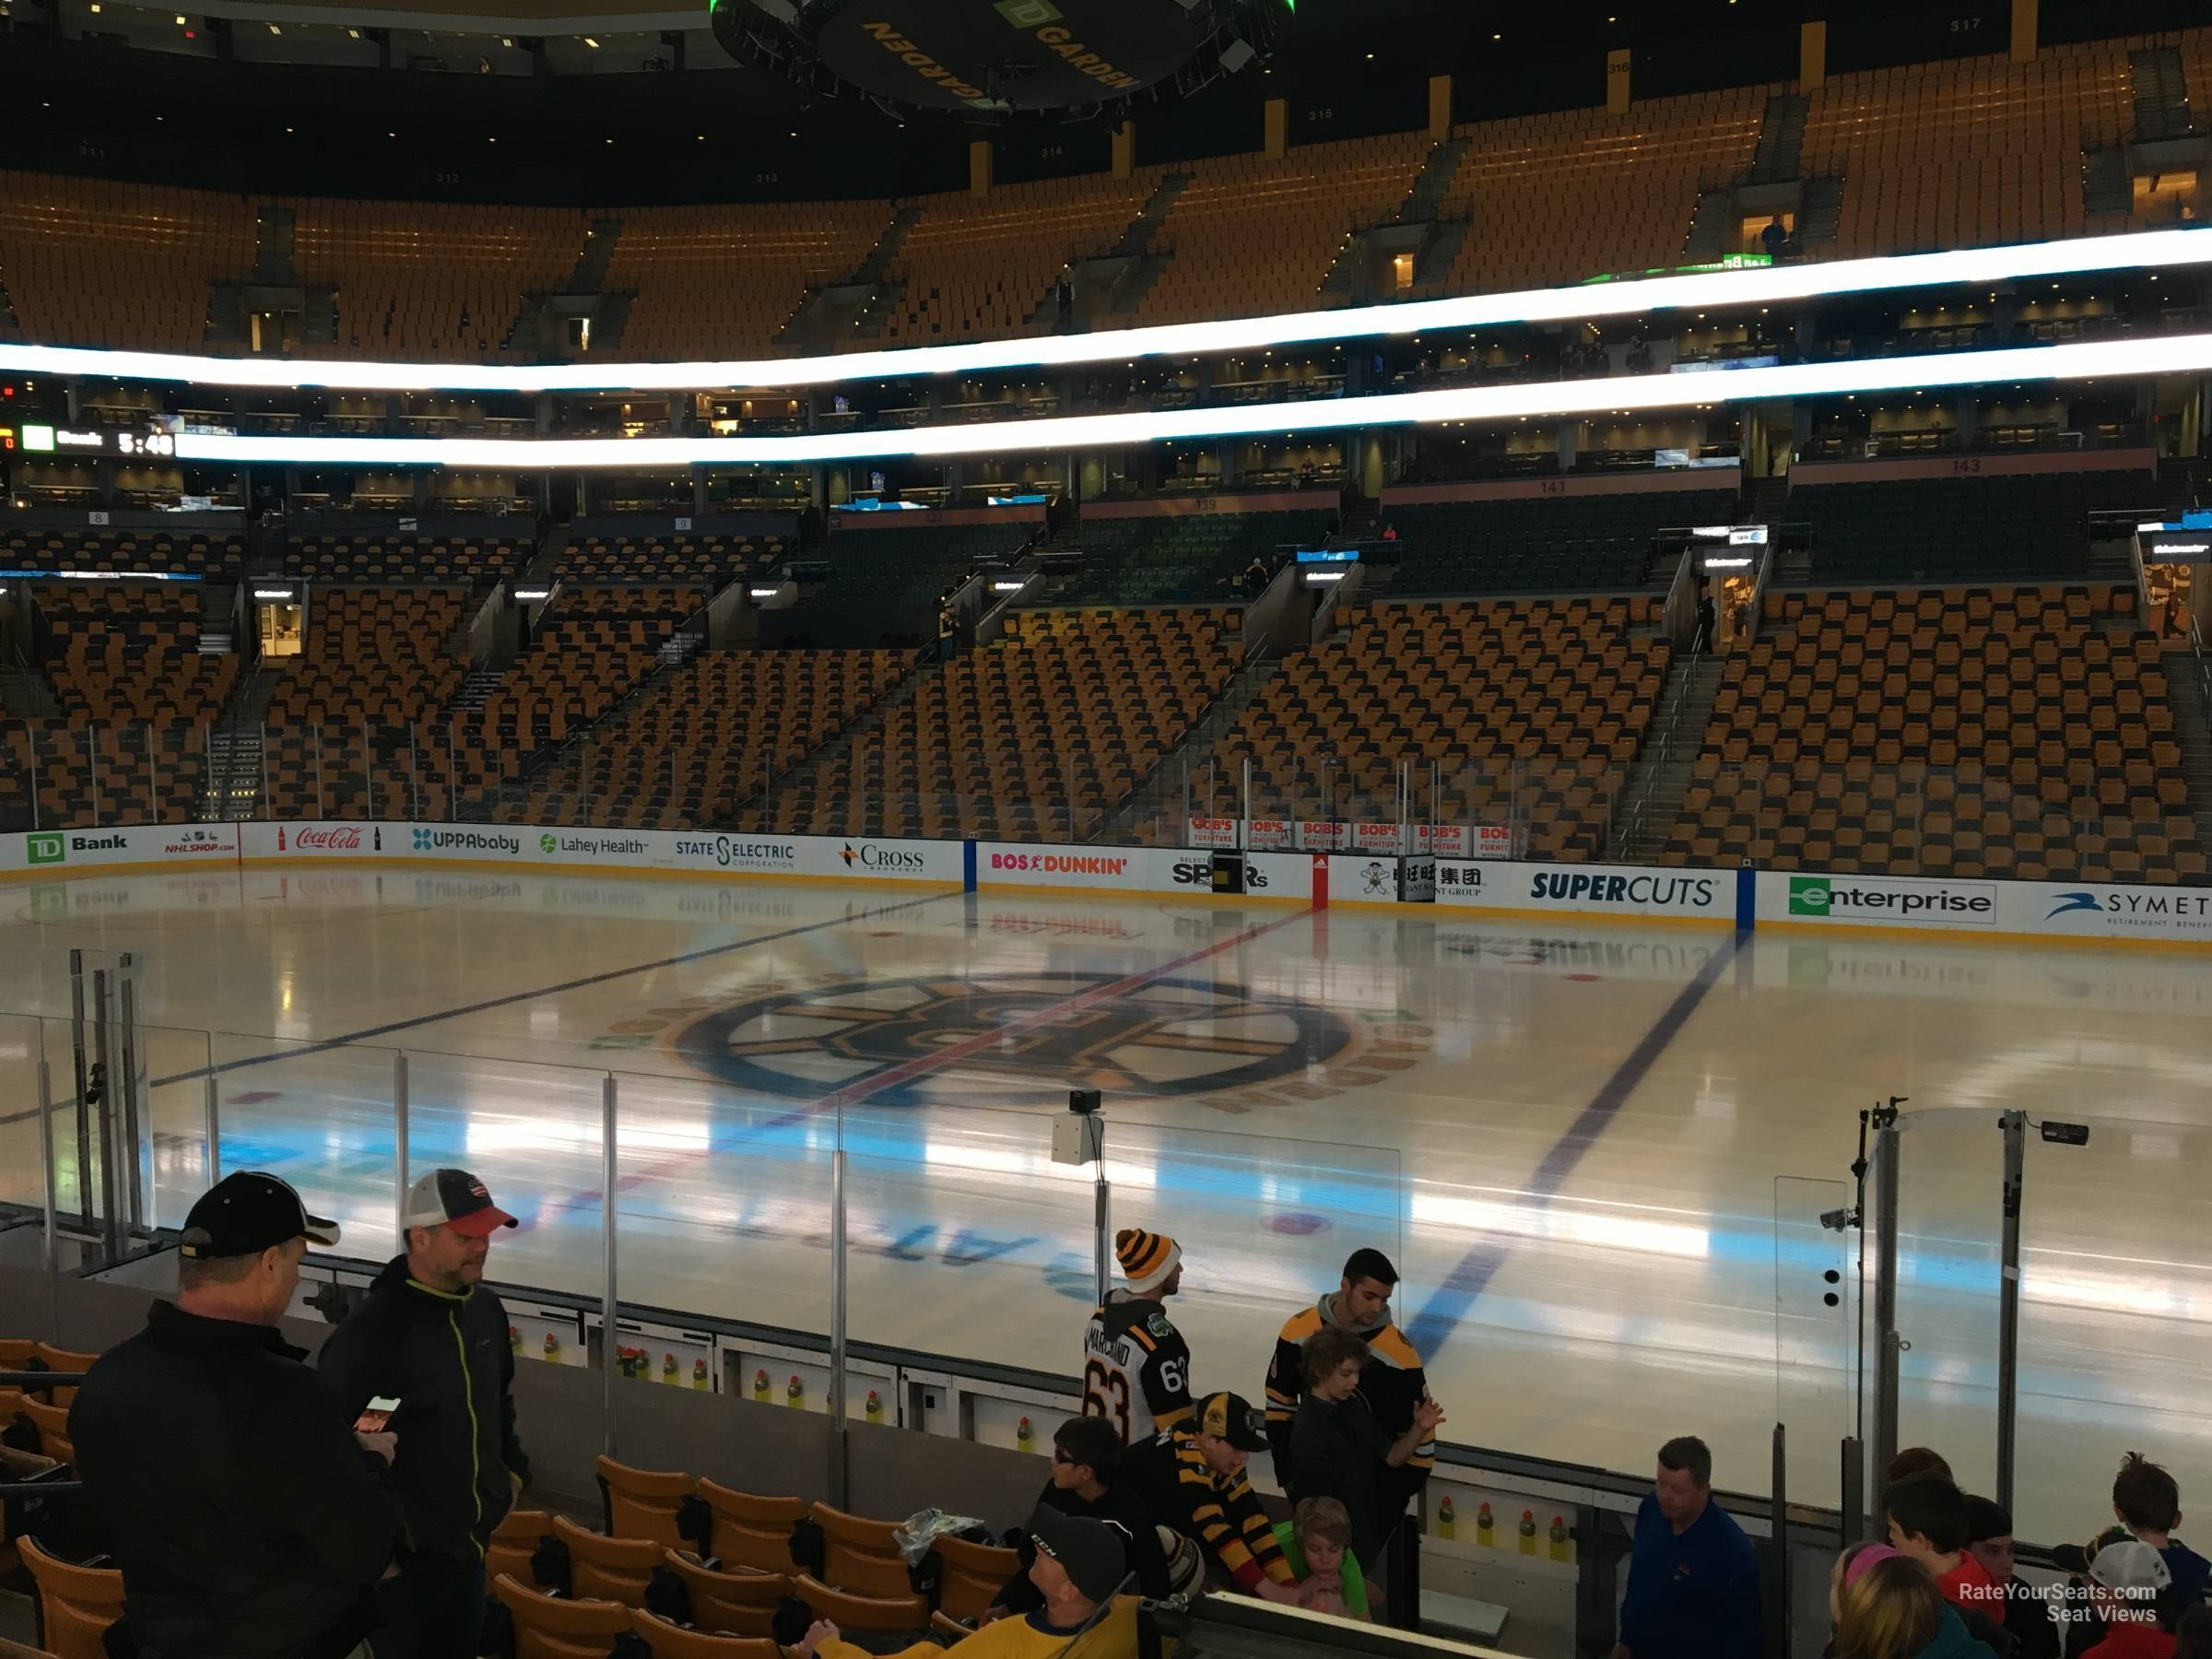 Td Garden Loge 22 Boston Bruins Rateyourseats Com